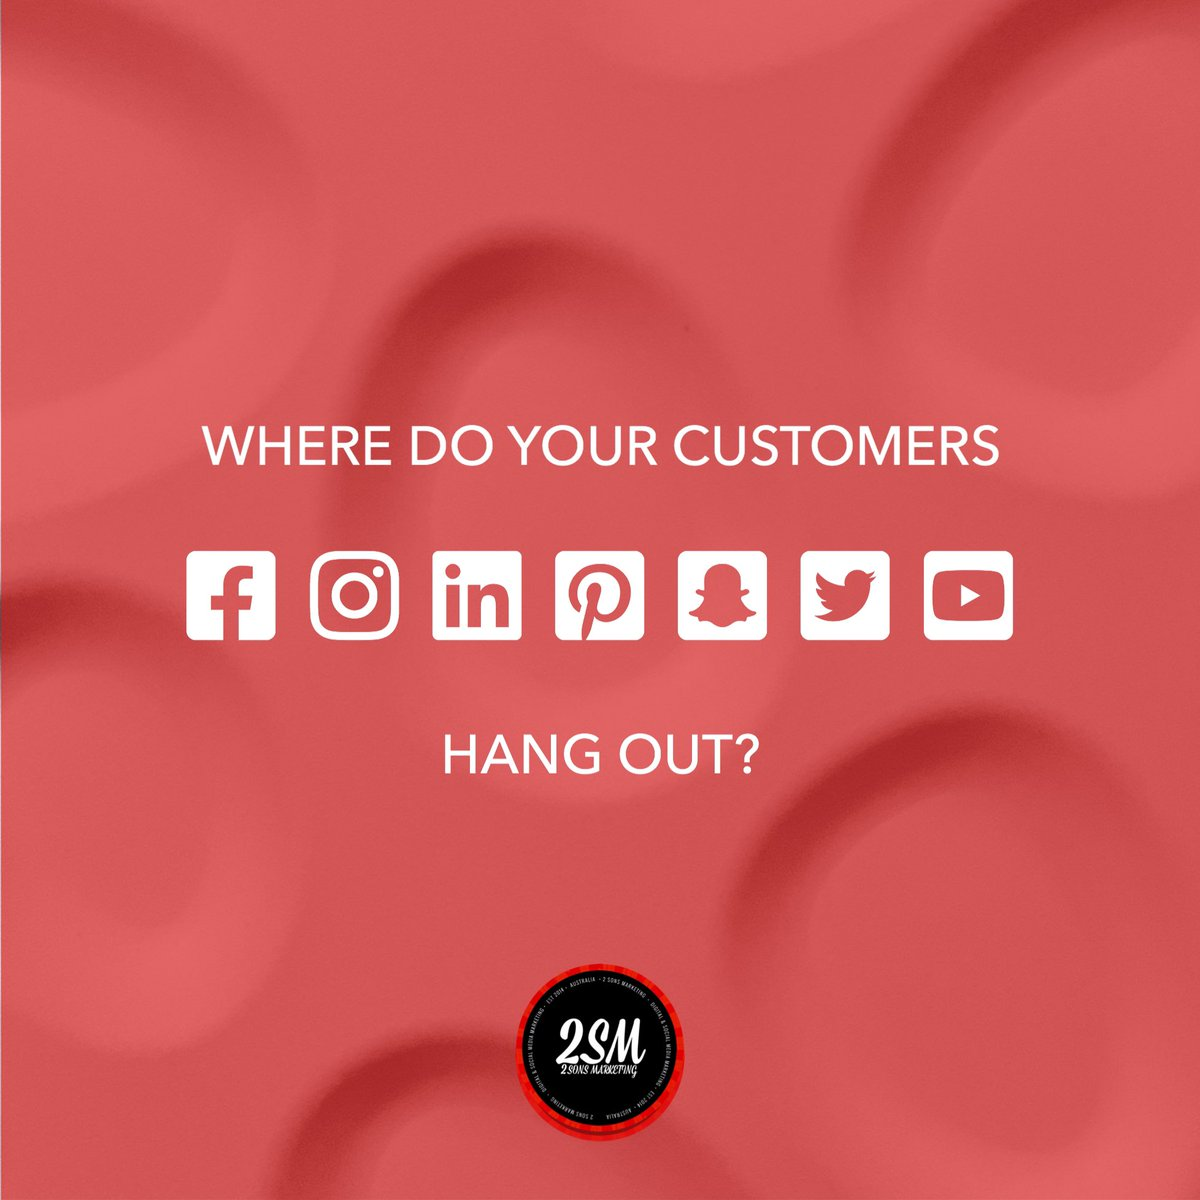 Once you know where your customers hang out, you can create content specific to that profile and engage them #socialmedia #sydneysocialmedia #sydneybusinesspic.twitter.com/jeutTAIP2o